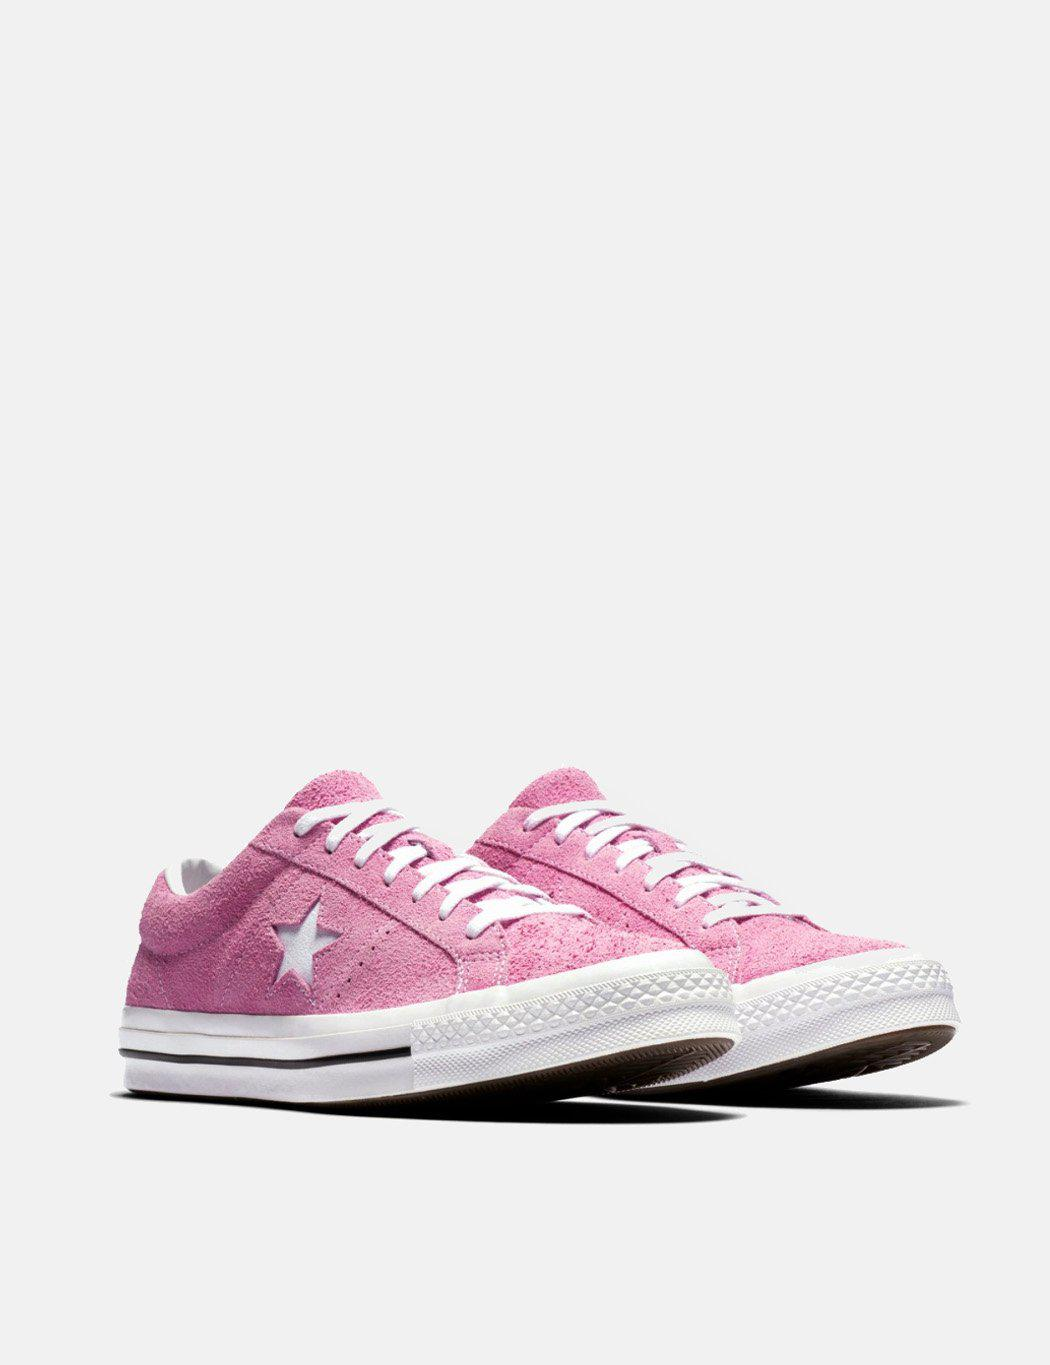 94195275db99 Lyst - Converse One Star Ox Low Suede (159492c) in Pink for Men